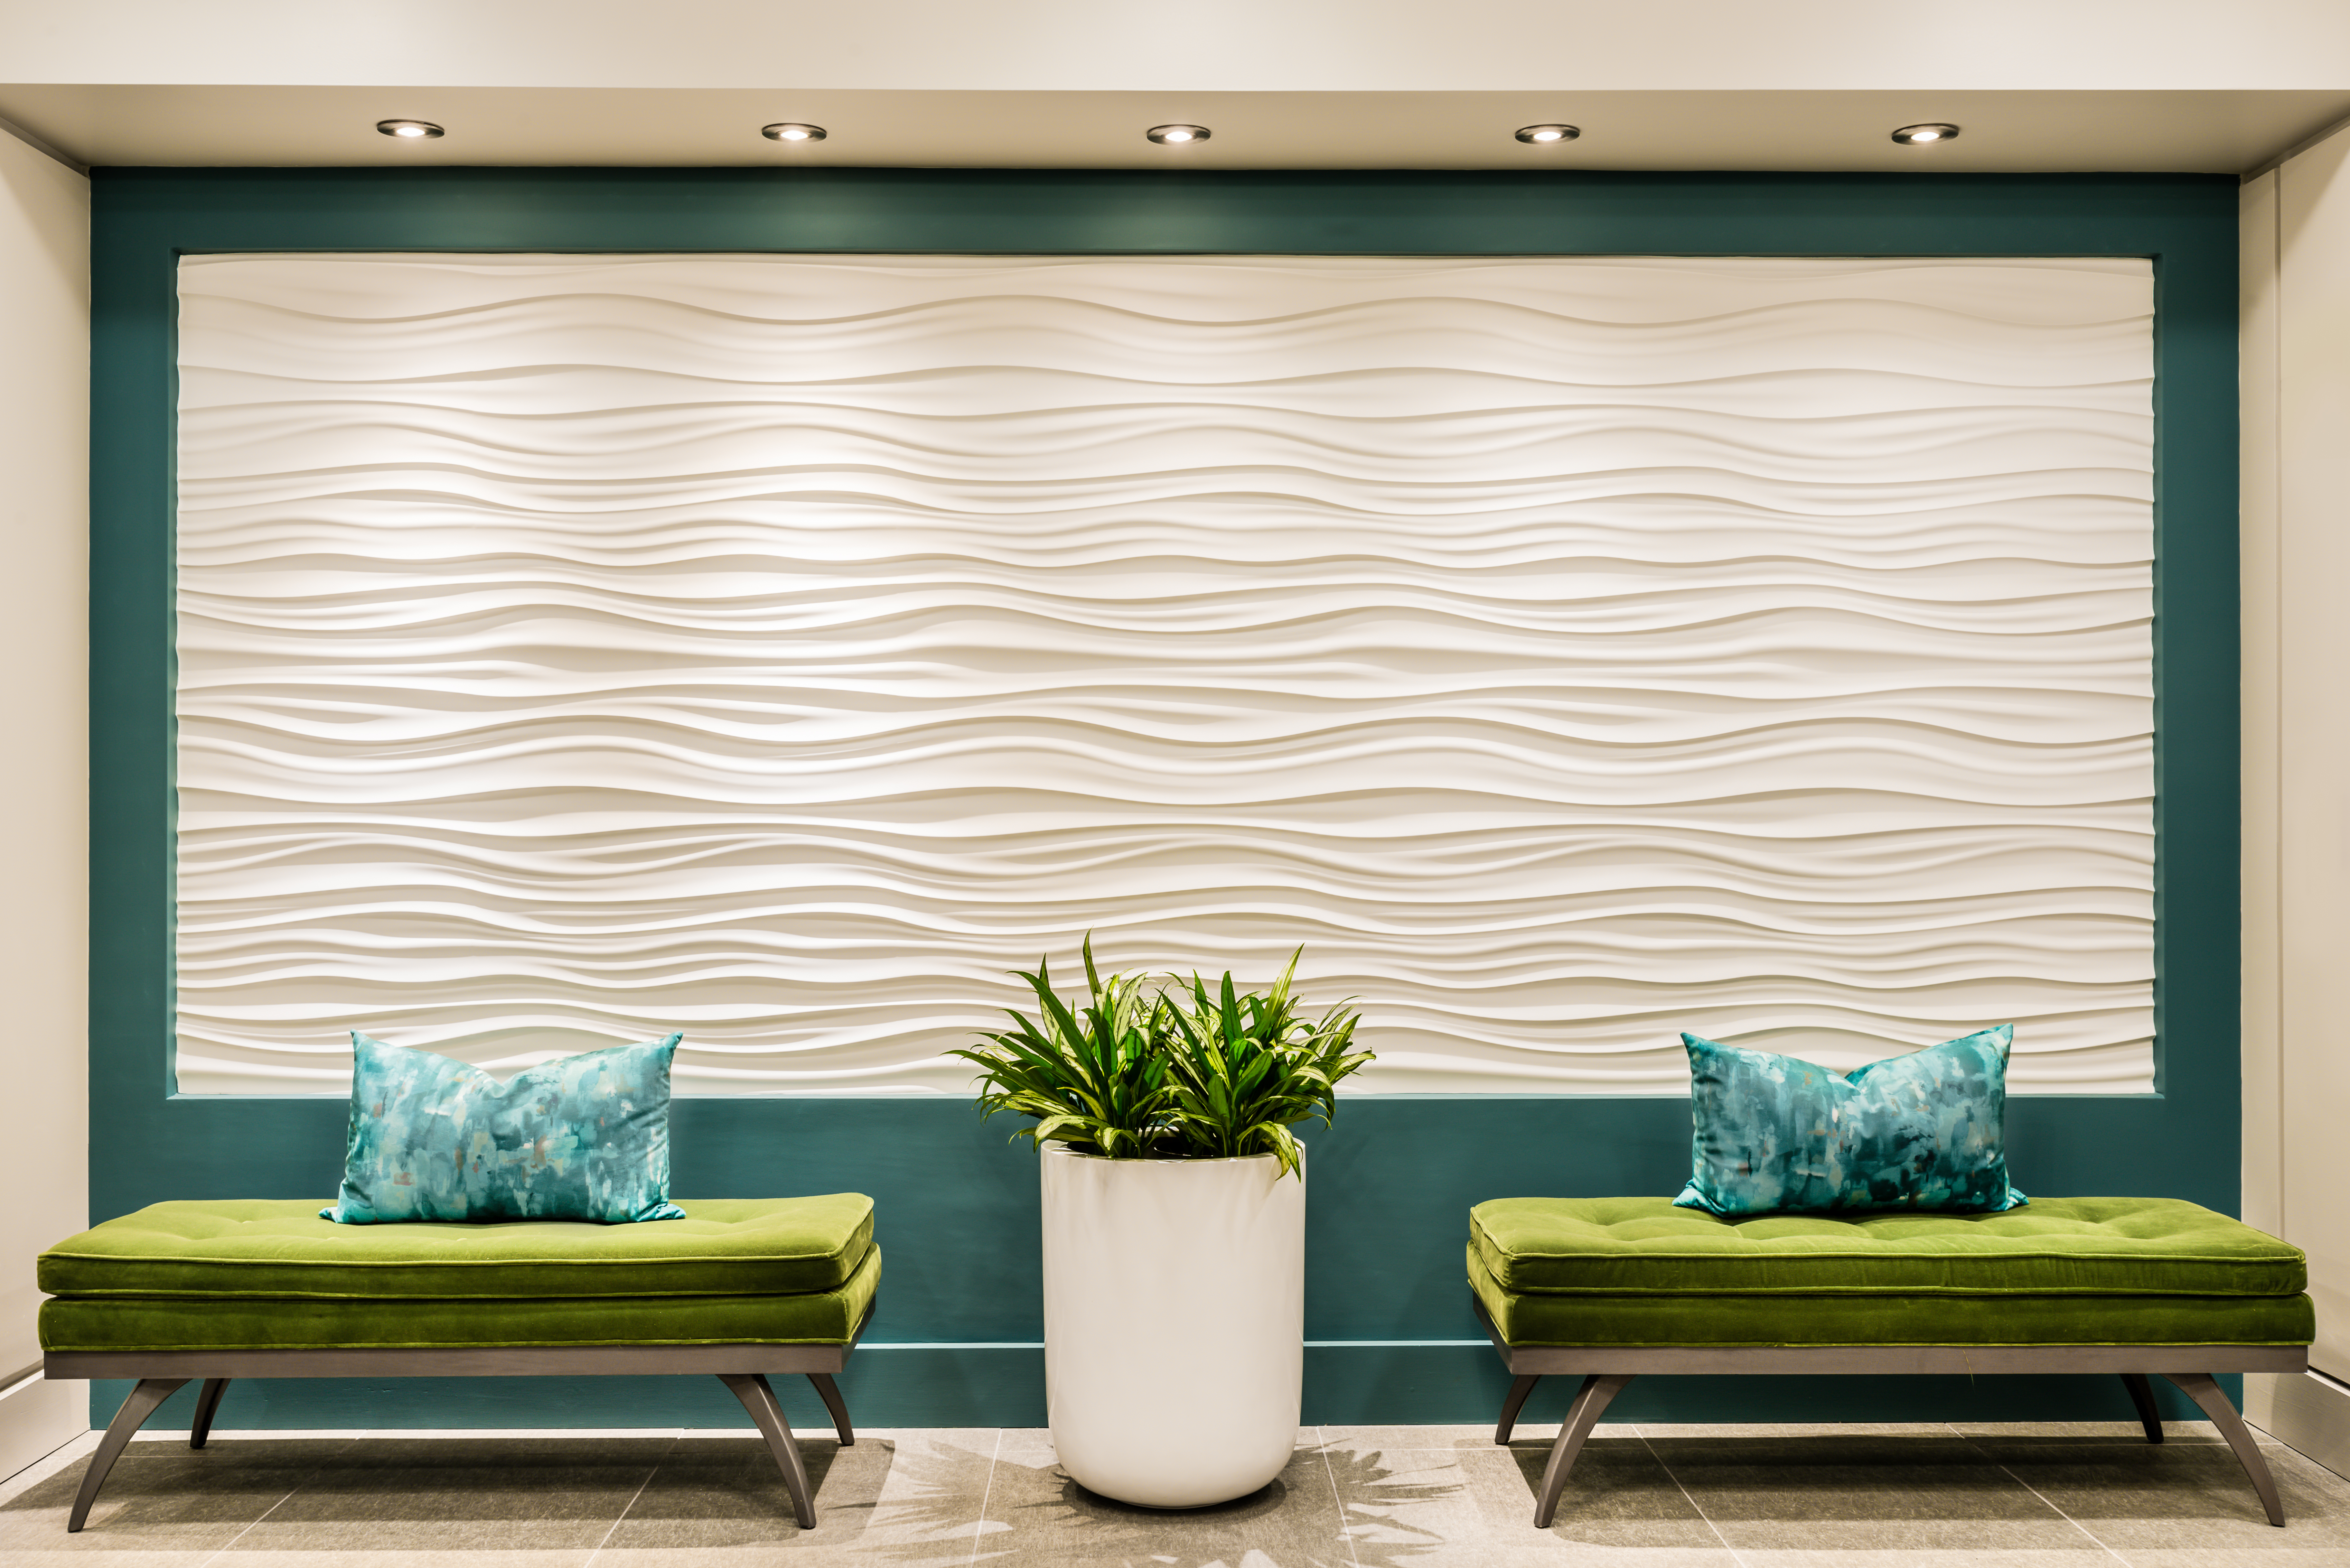 """7. 3D and Textured Wallcoverings   Texture is essential in any well-designed space. """"Dimensional wallcoverings are unexpected and unique, and add interest to a space without the need to add color,""""says Jill Najnigier ofJN Interior Spaces. """"Previously this wall was an opening to the building's mailroom, an unwanted focal point in the lobby. We relocated the entrance to the mailroom, allowing for the creation of a feature wall. My goal was to create a sculptural feature wall, a dynamic focal point. The 3D wave pattern was perfect, a nod to the Boston harbor just outside the door."""""""